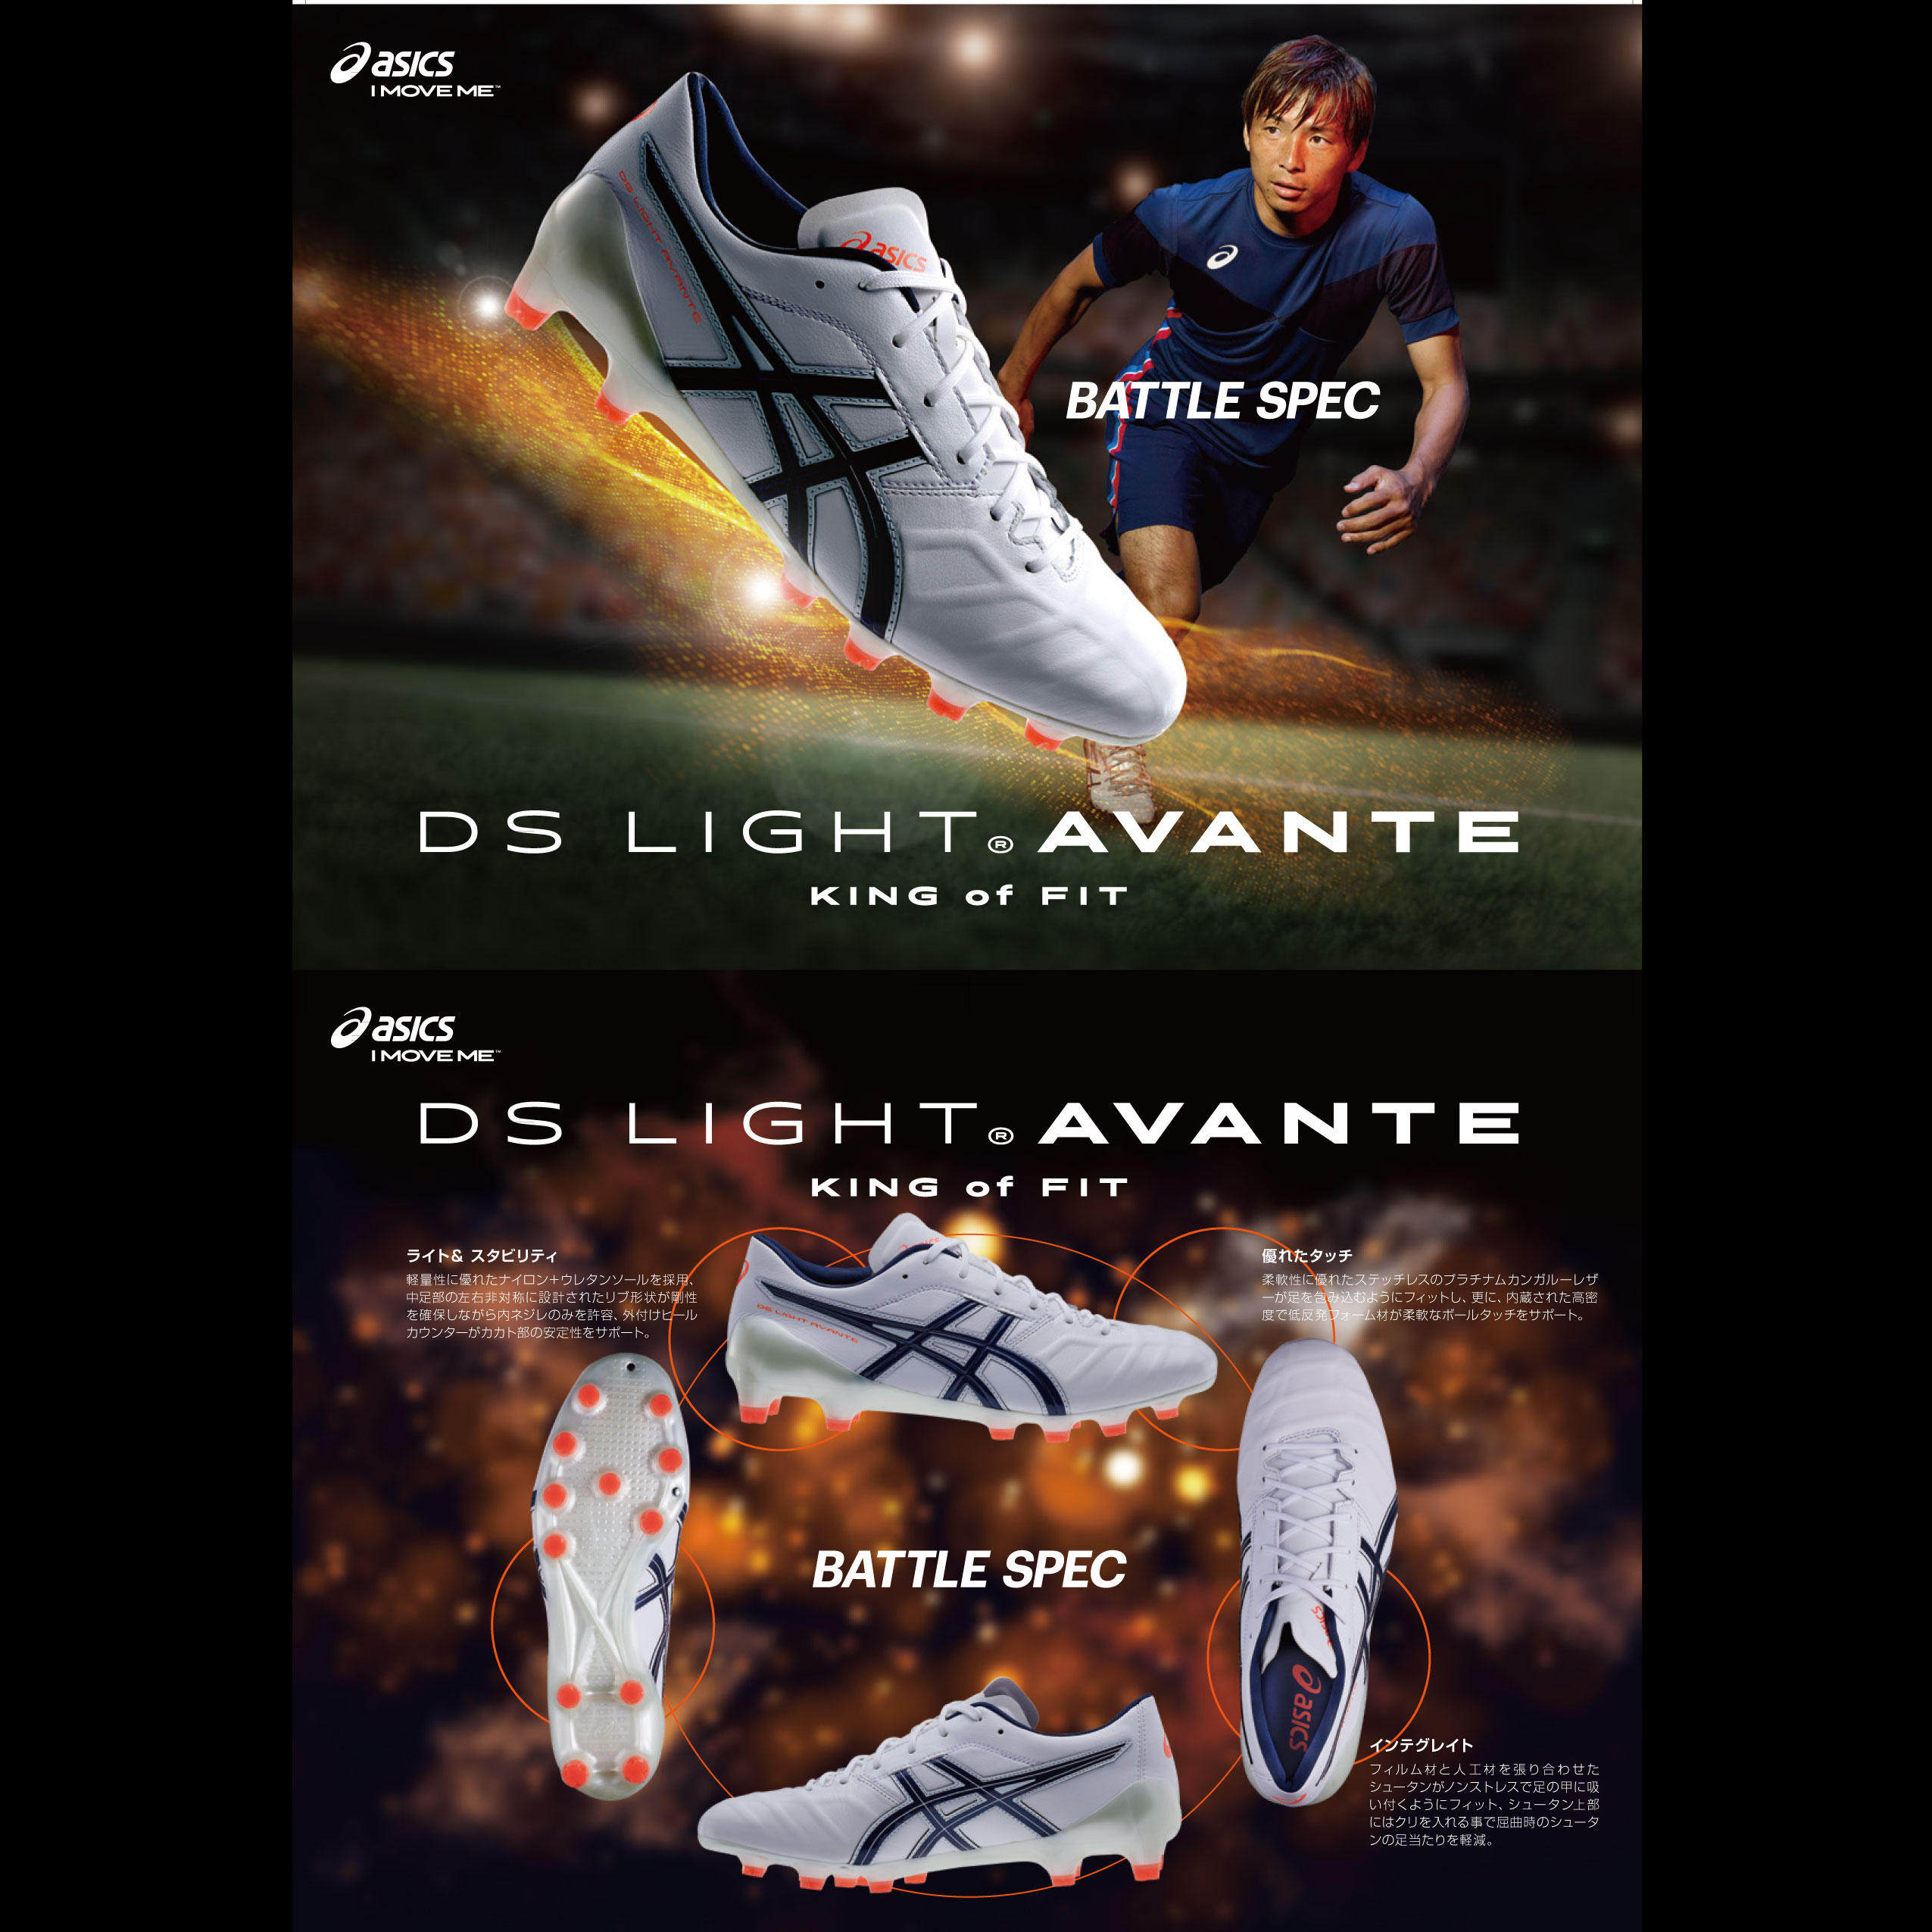 DS LIGHT AVANTE